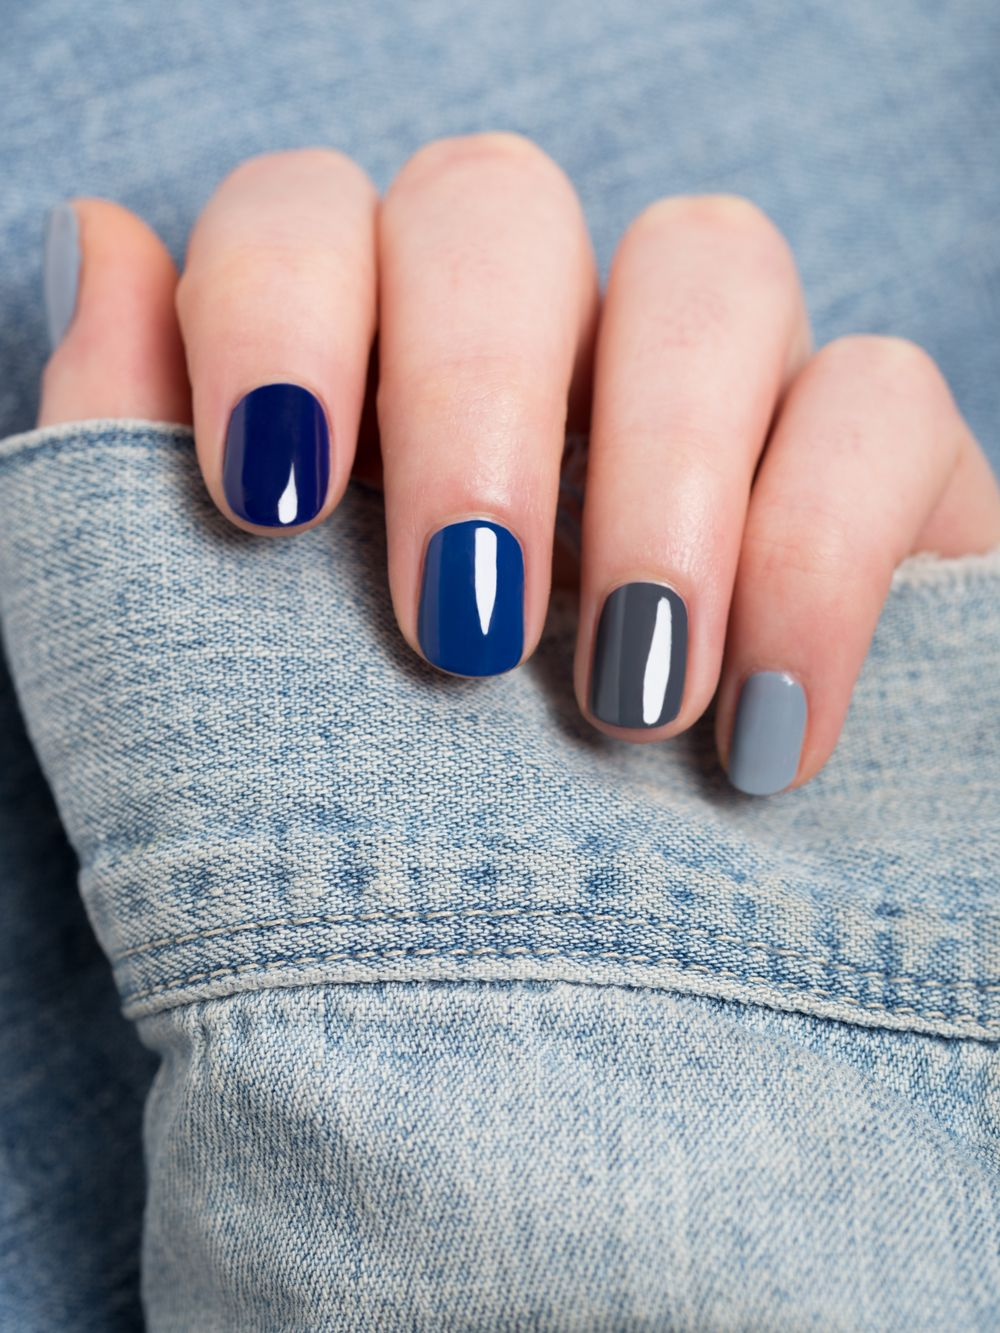 Nail colors that look great with denim | Hair, make up & nails ...